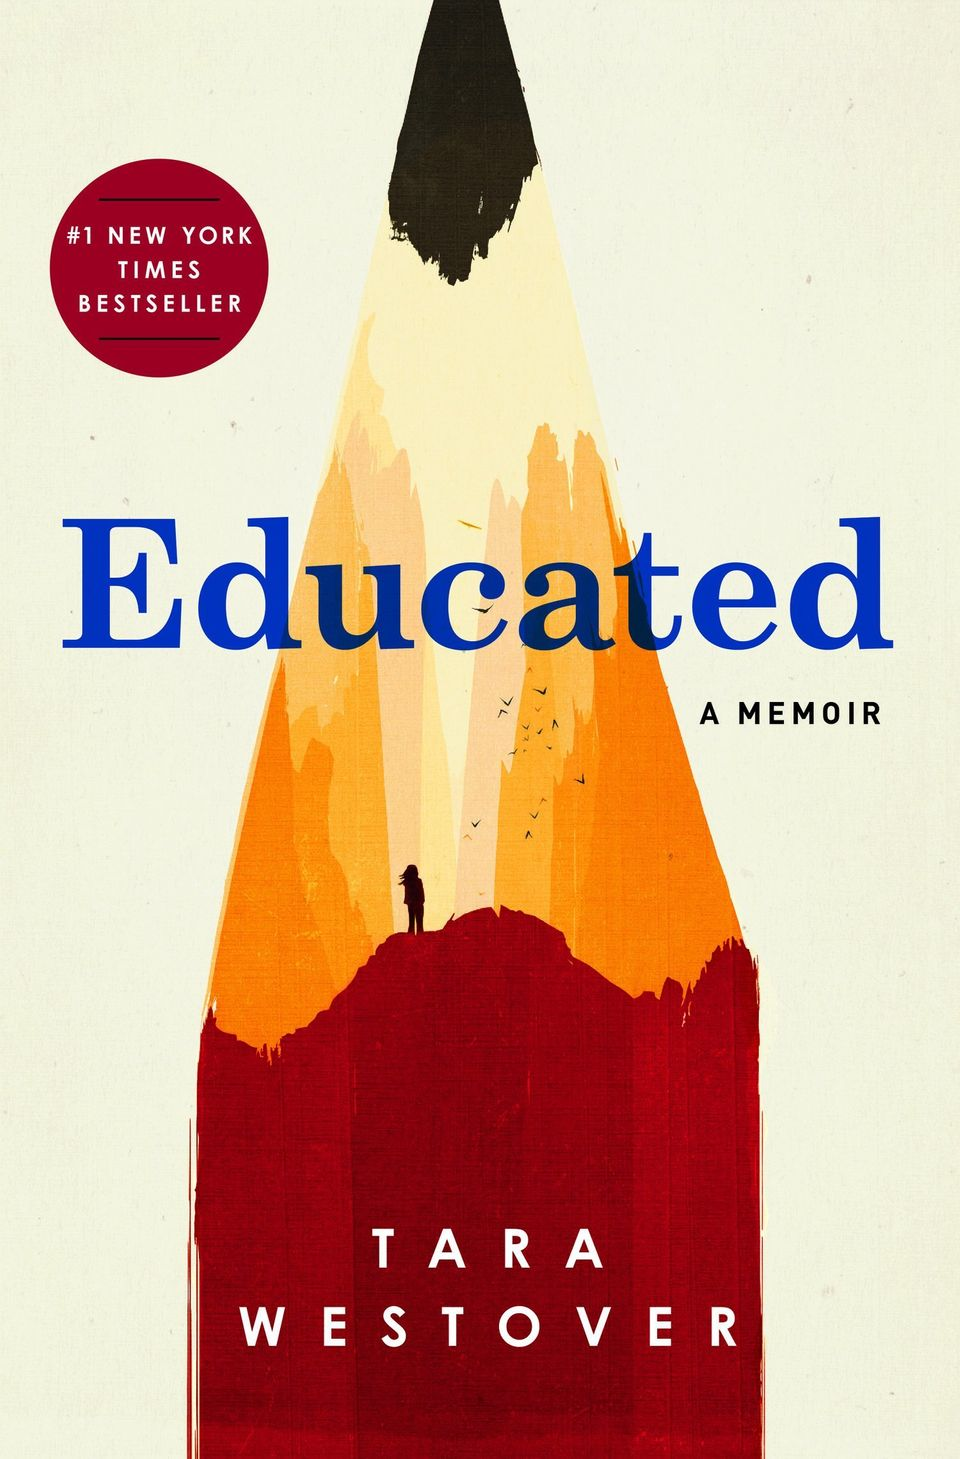 Tara Westover grewup in a conservative, Mormon family without schooling and ultimately graduated...